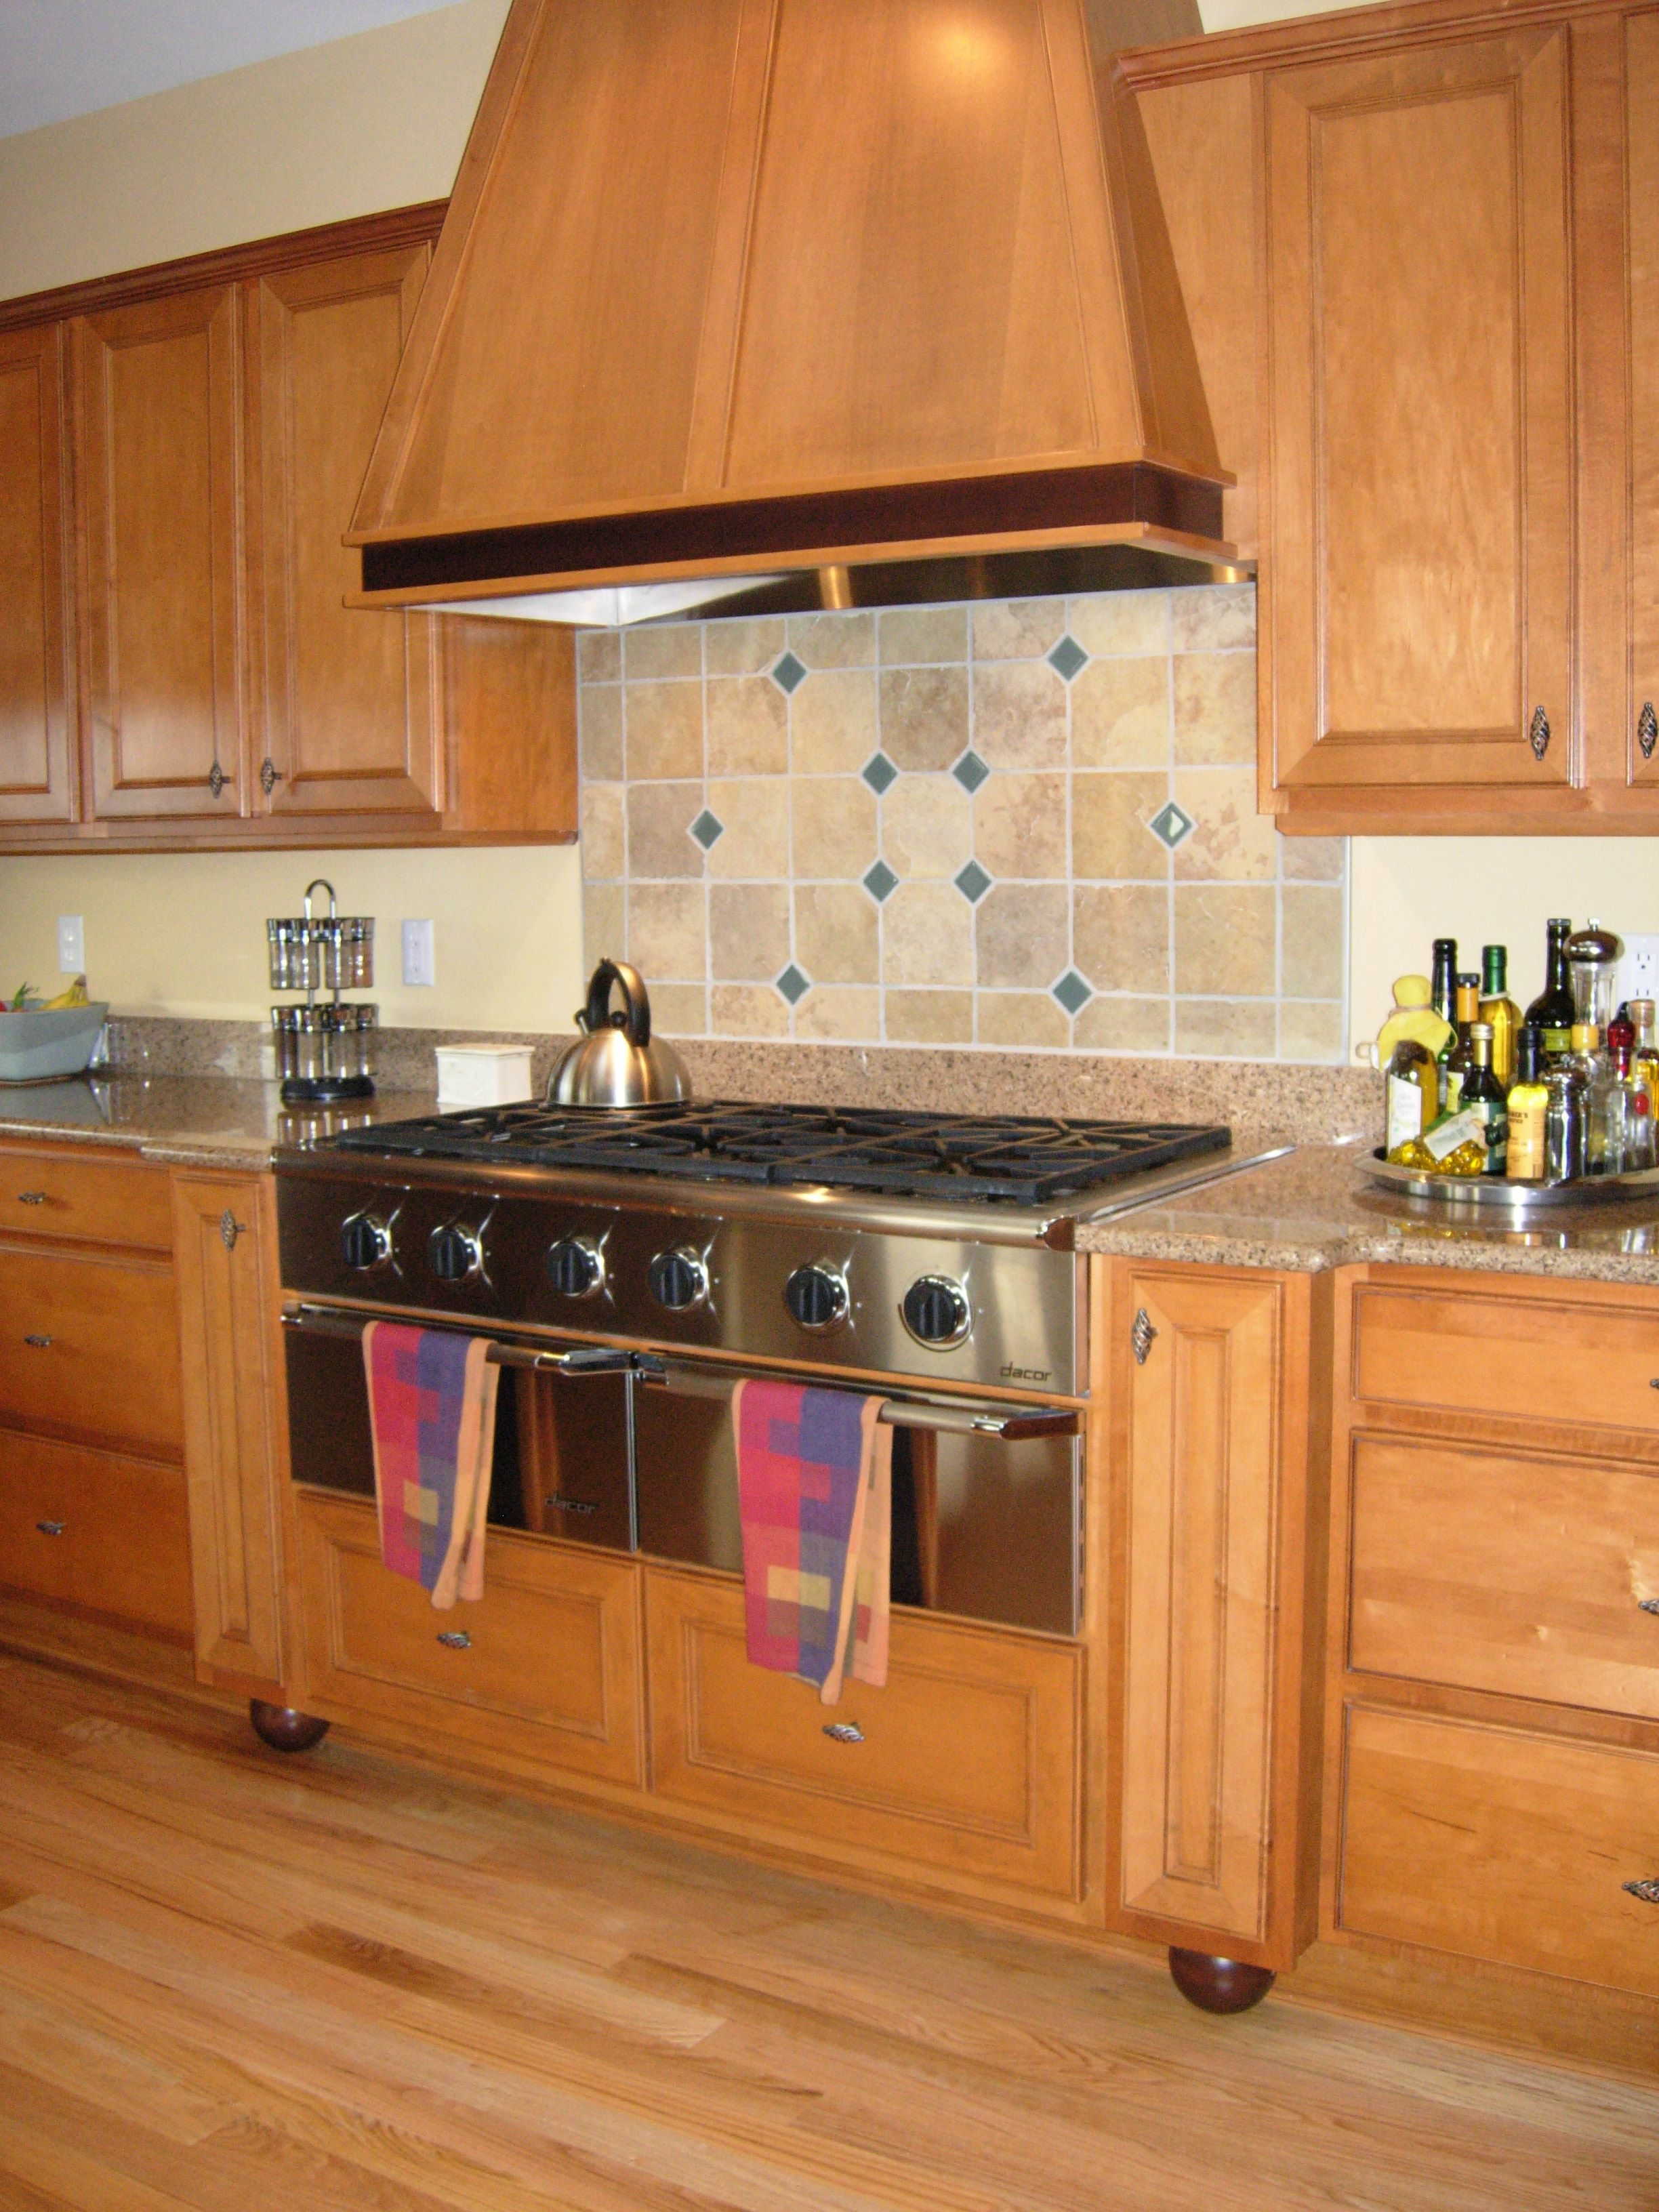 A builder grade cabinet upgraded with the